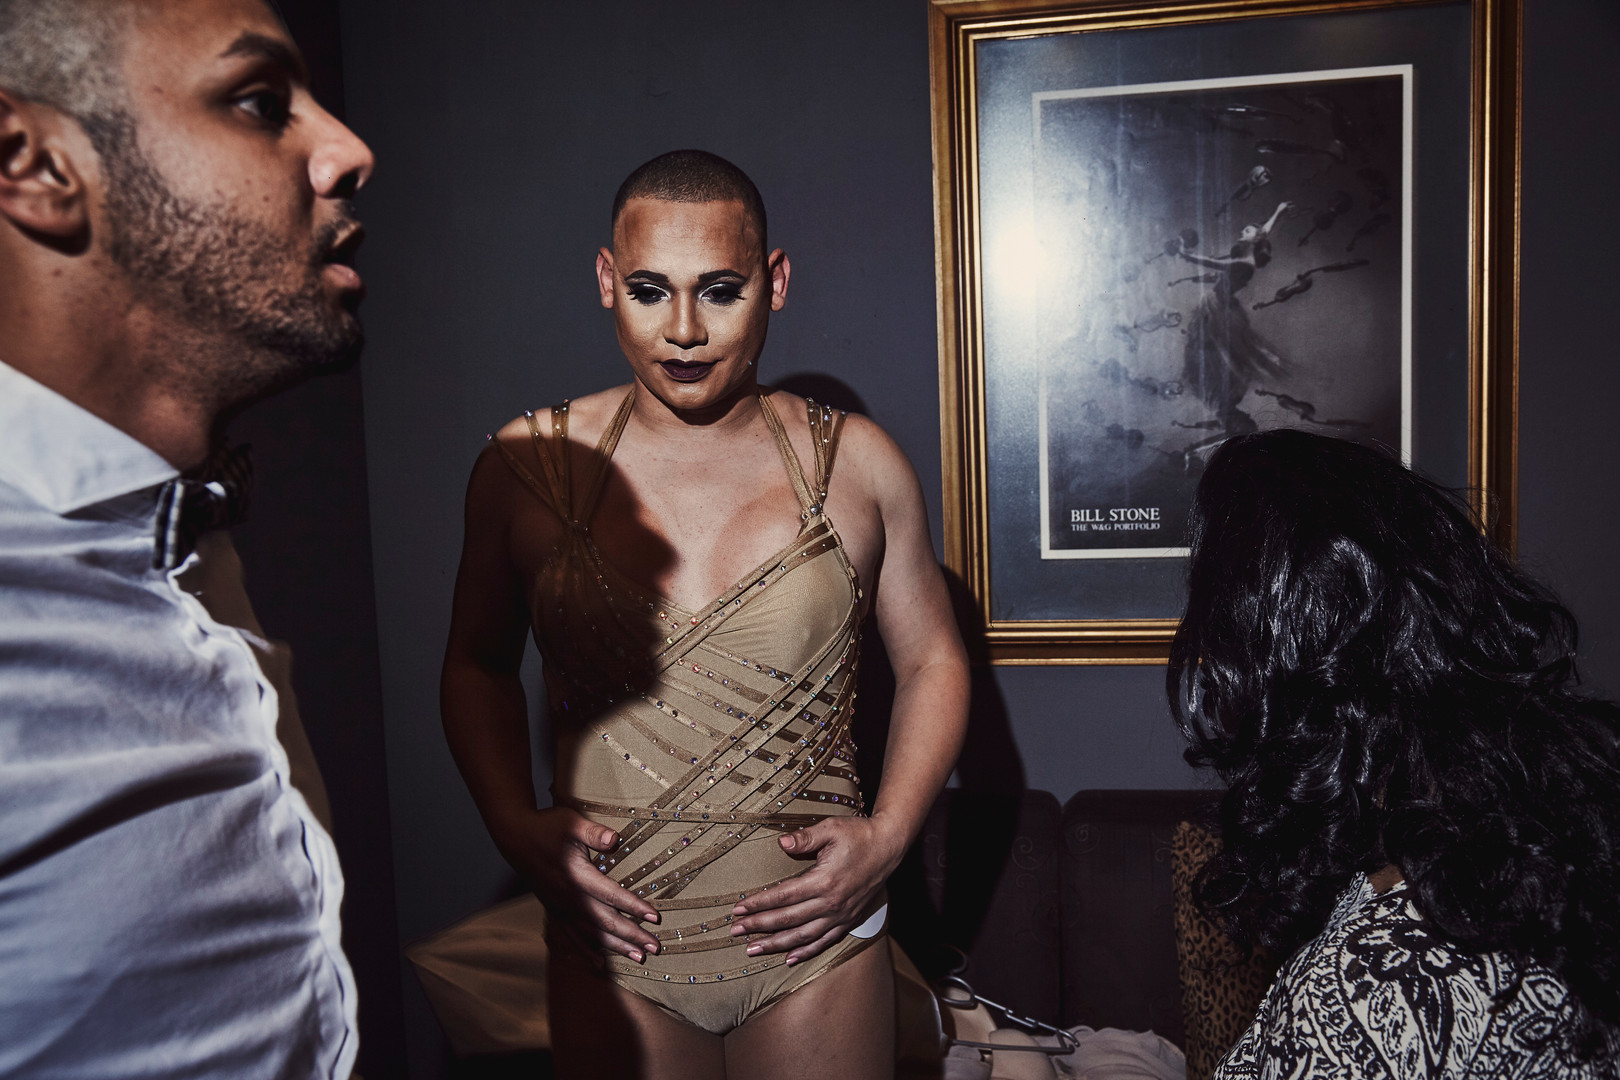 Skyer Barrymore (pictured middle) gets ready for the swimwear category of the LGBT Cape Peninsula pageant that was hosted at Galaxy nightclub in Athlone, Cape Town.